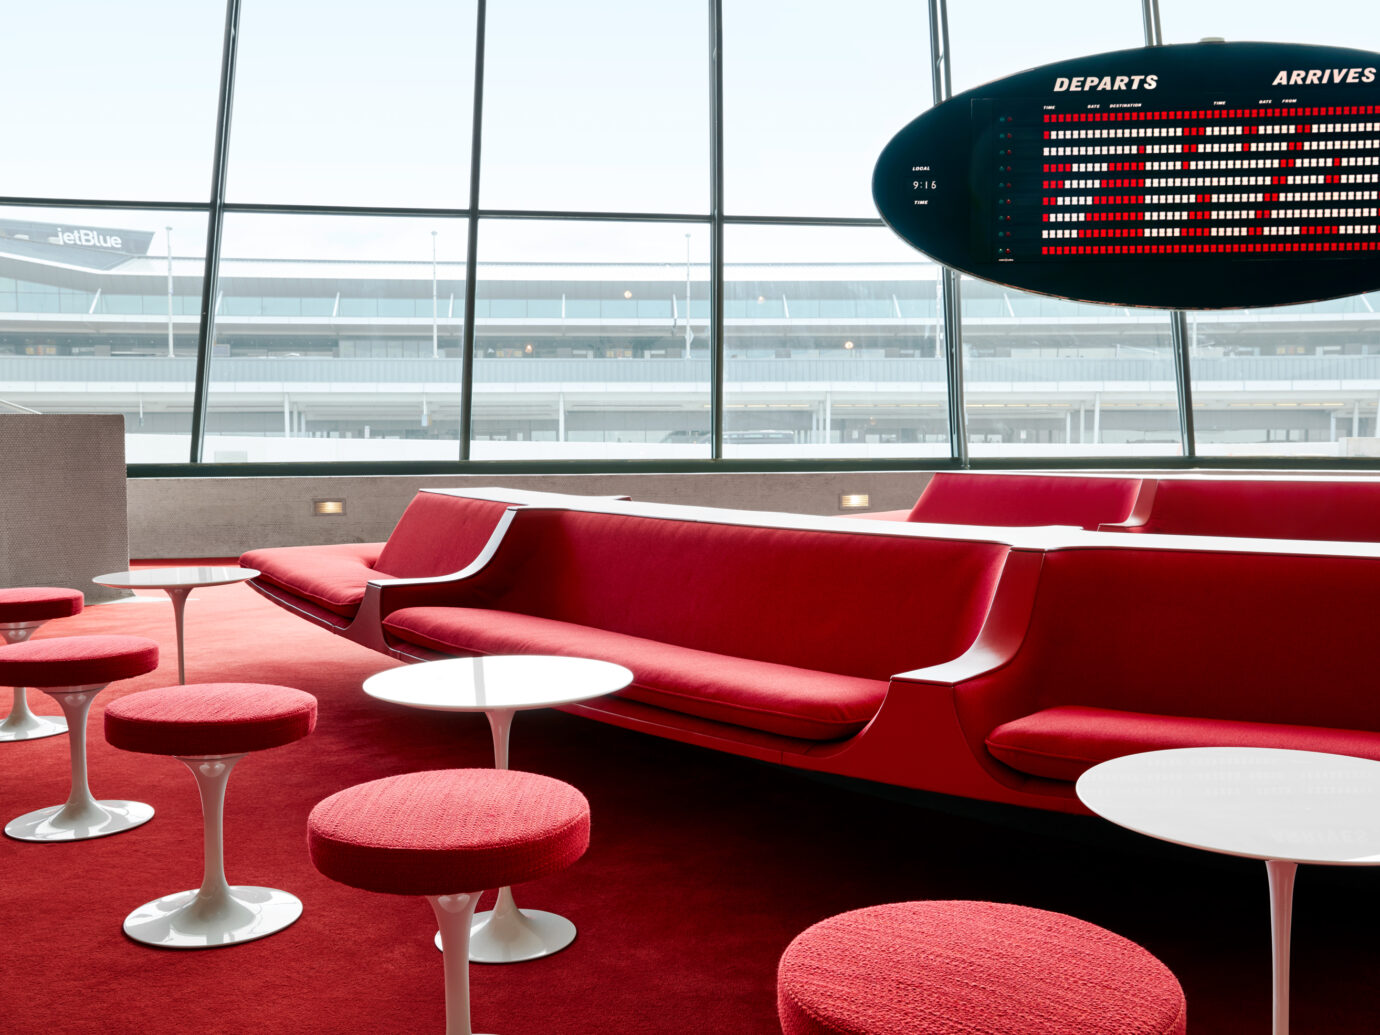 TWA Hotel seating